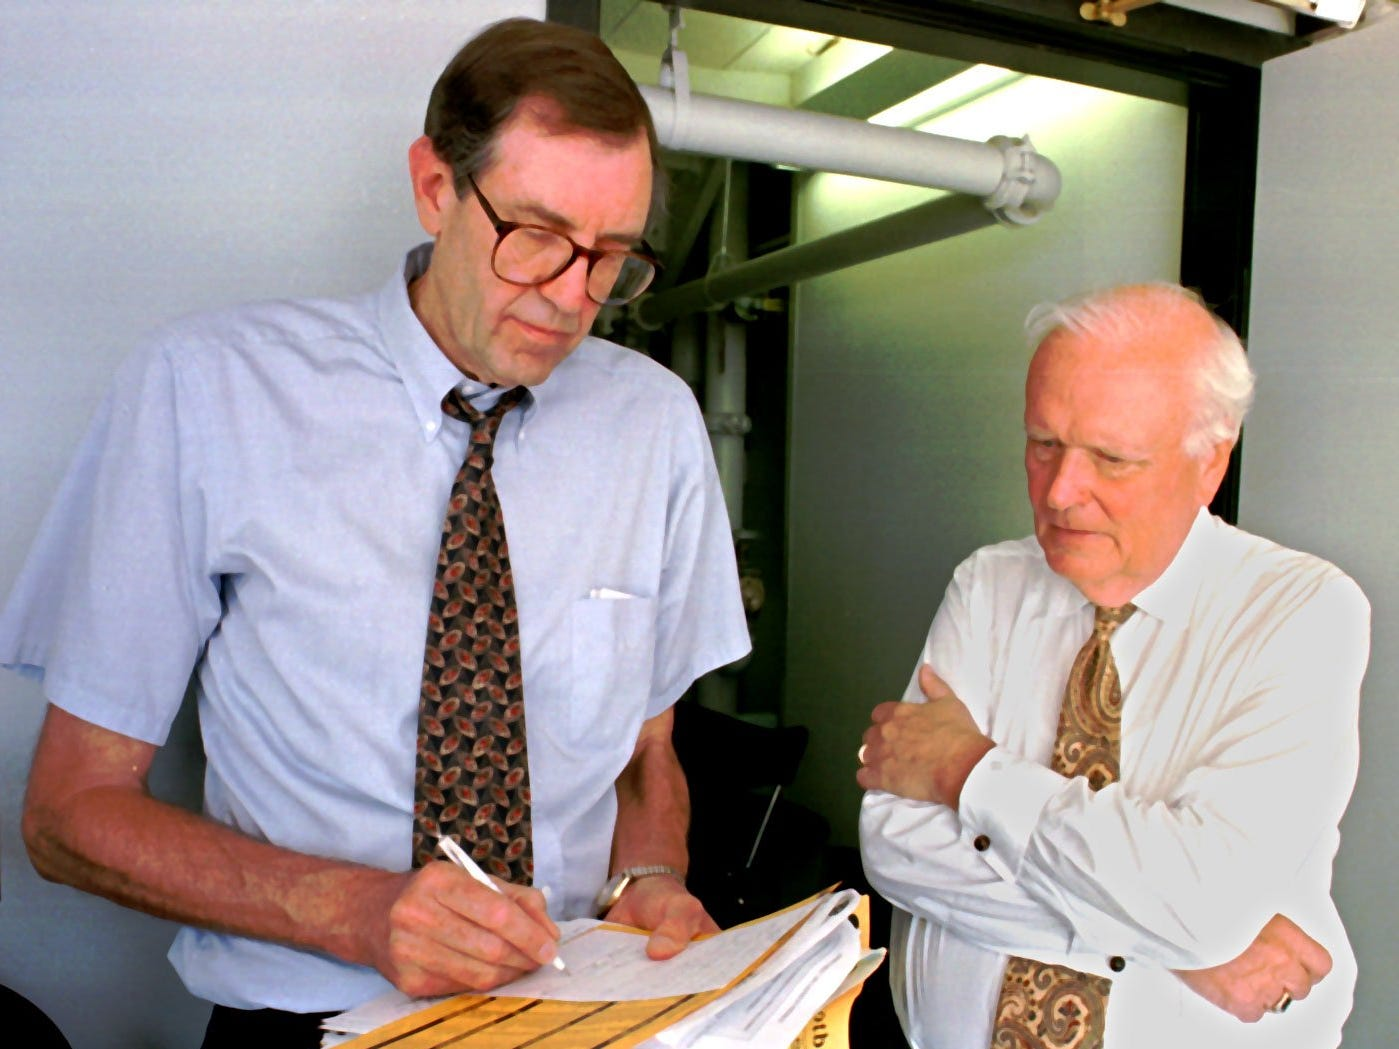 From 1997: Iowa football commentators Ron Gonder, left, and Bob Brooks, right, go over notes in broadcast booth before a game against Northern Iowa.